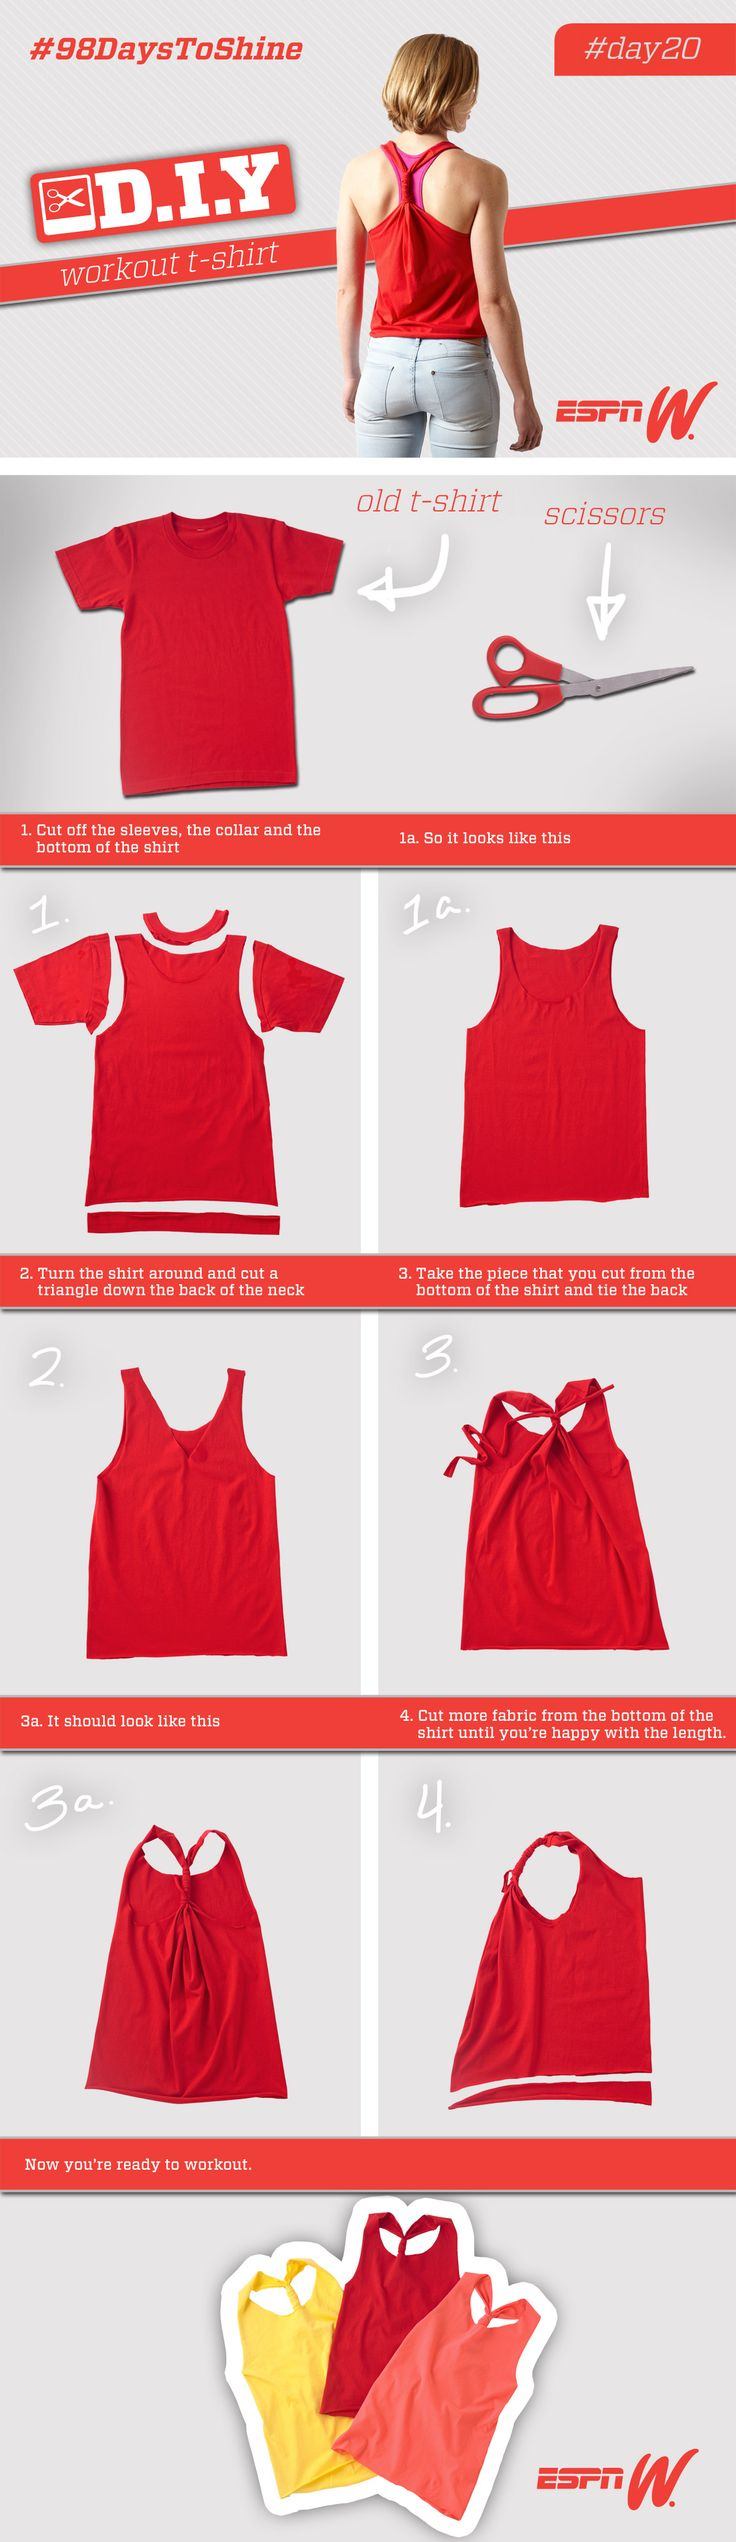 learn how to turn an old t shirt into the perfect workout top visit - T Shirt Cutting Designs Ideas